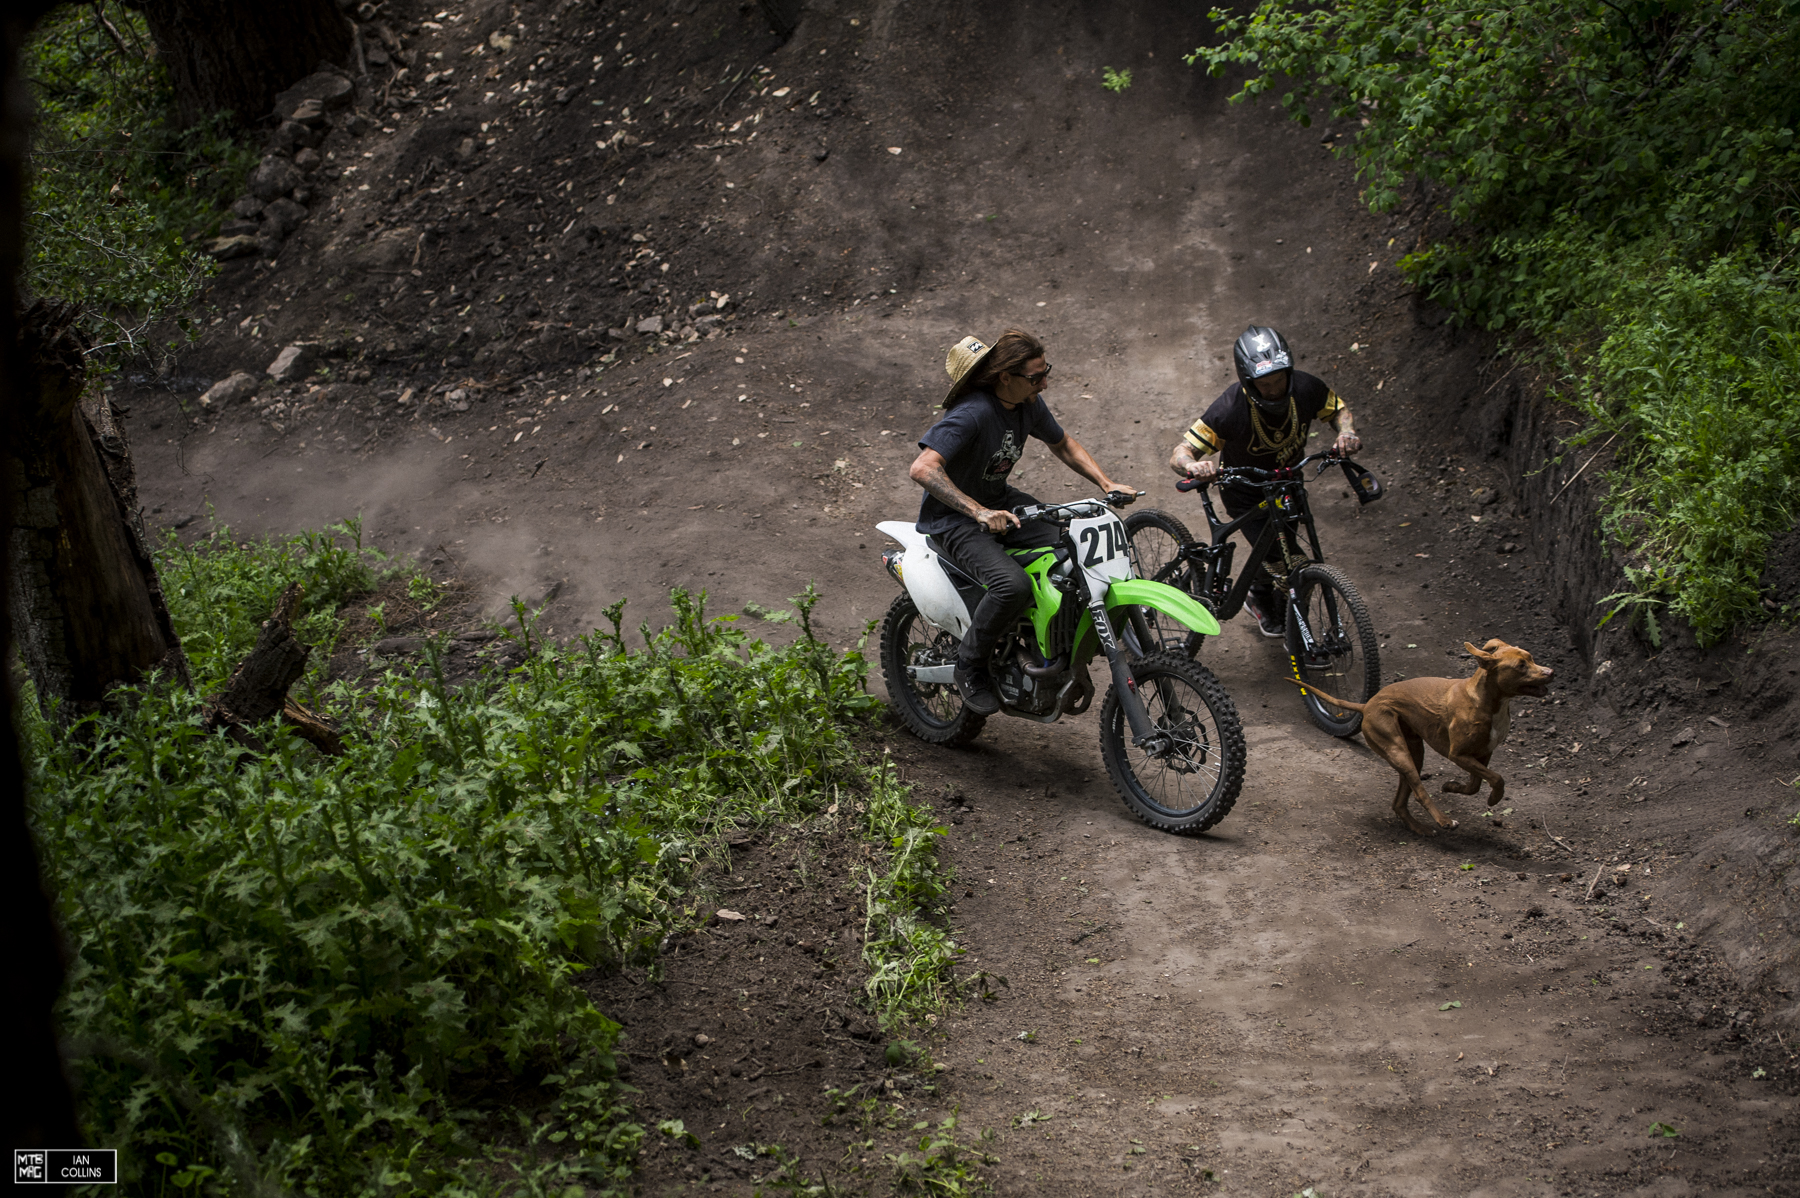 Swanpound master Arik Swan and Jordy Lunn head up for the first laps with an excited canine.